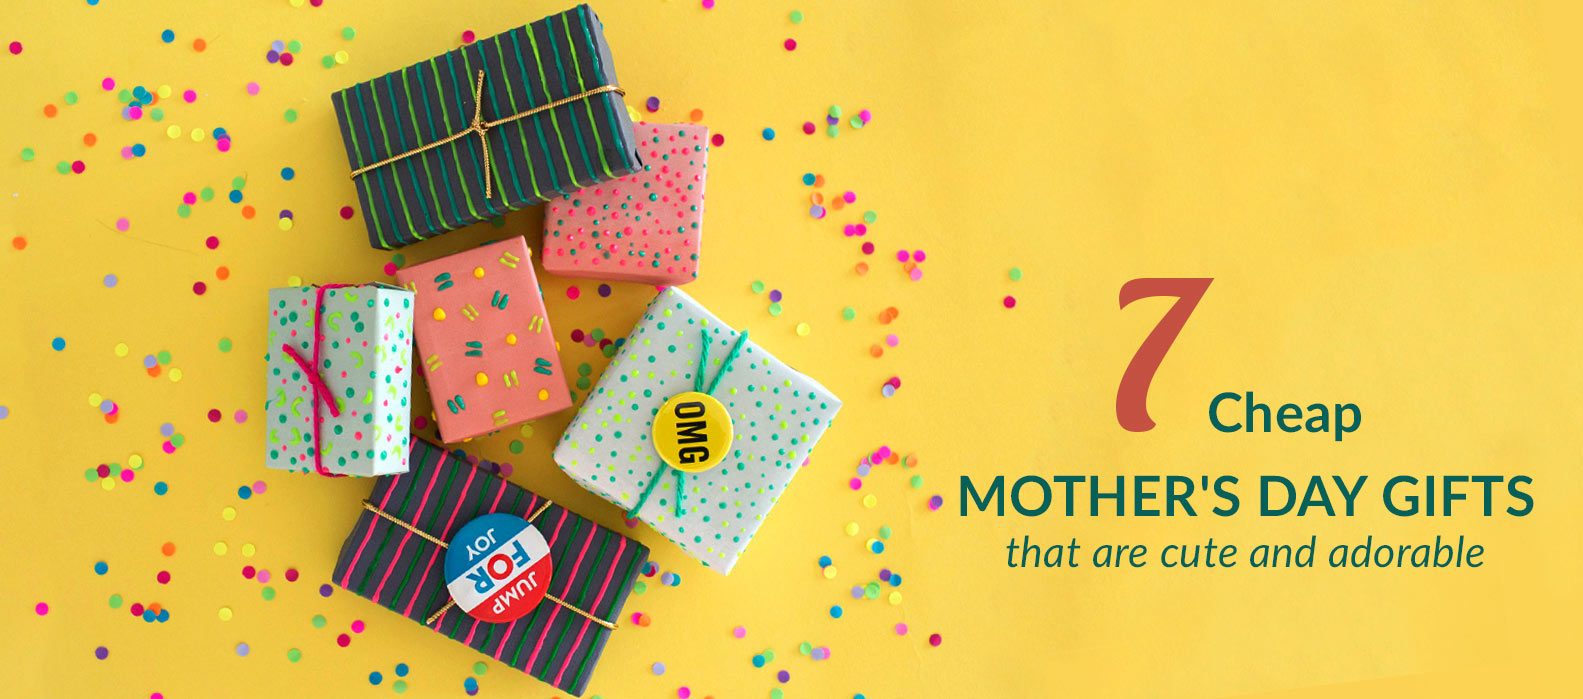 7-cheap-mother's-day-gift